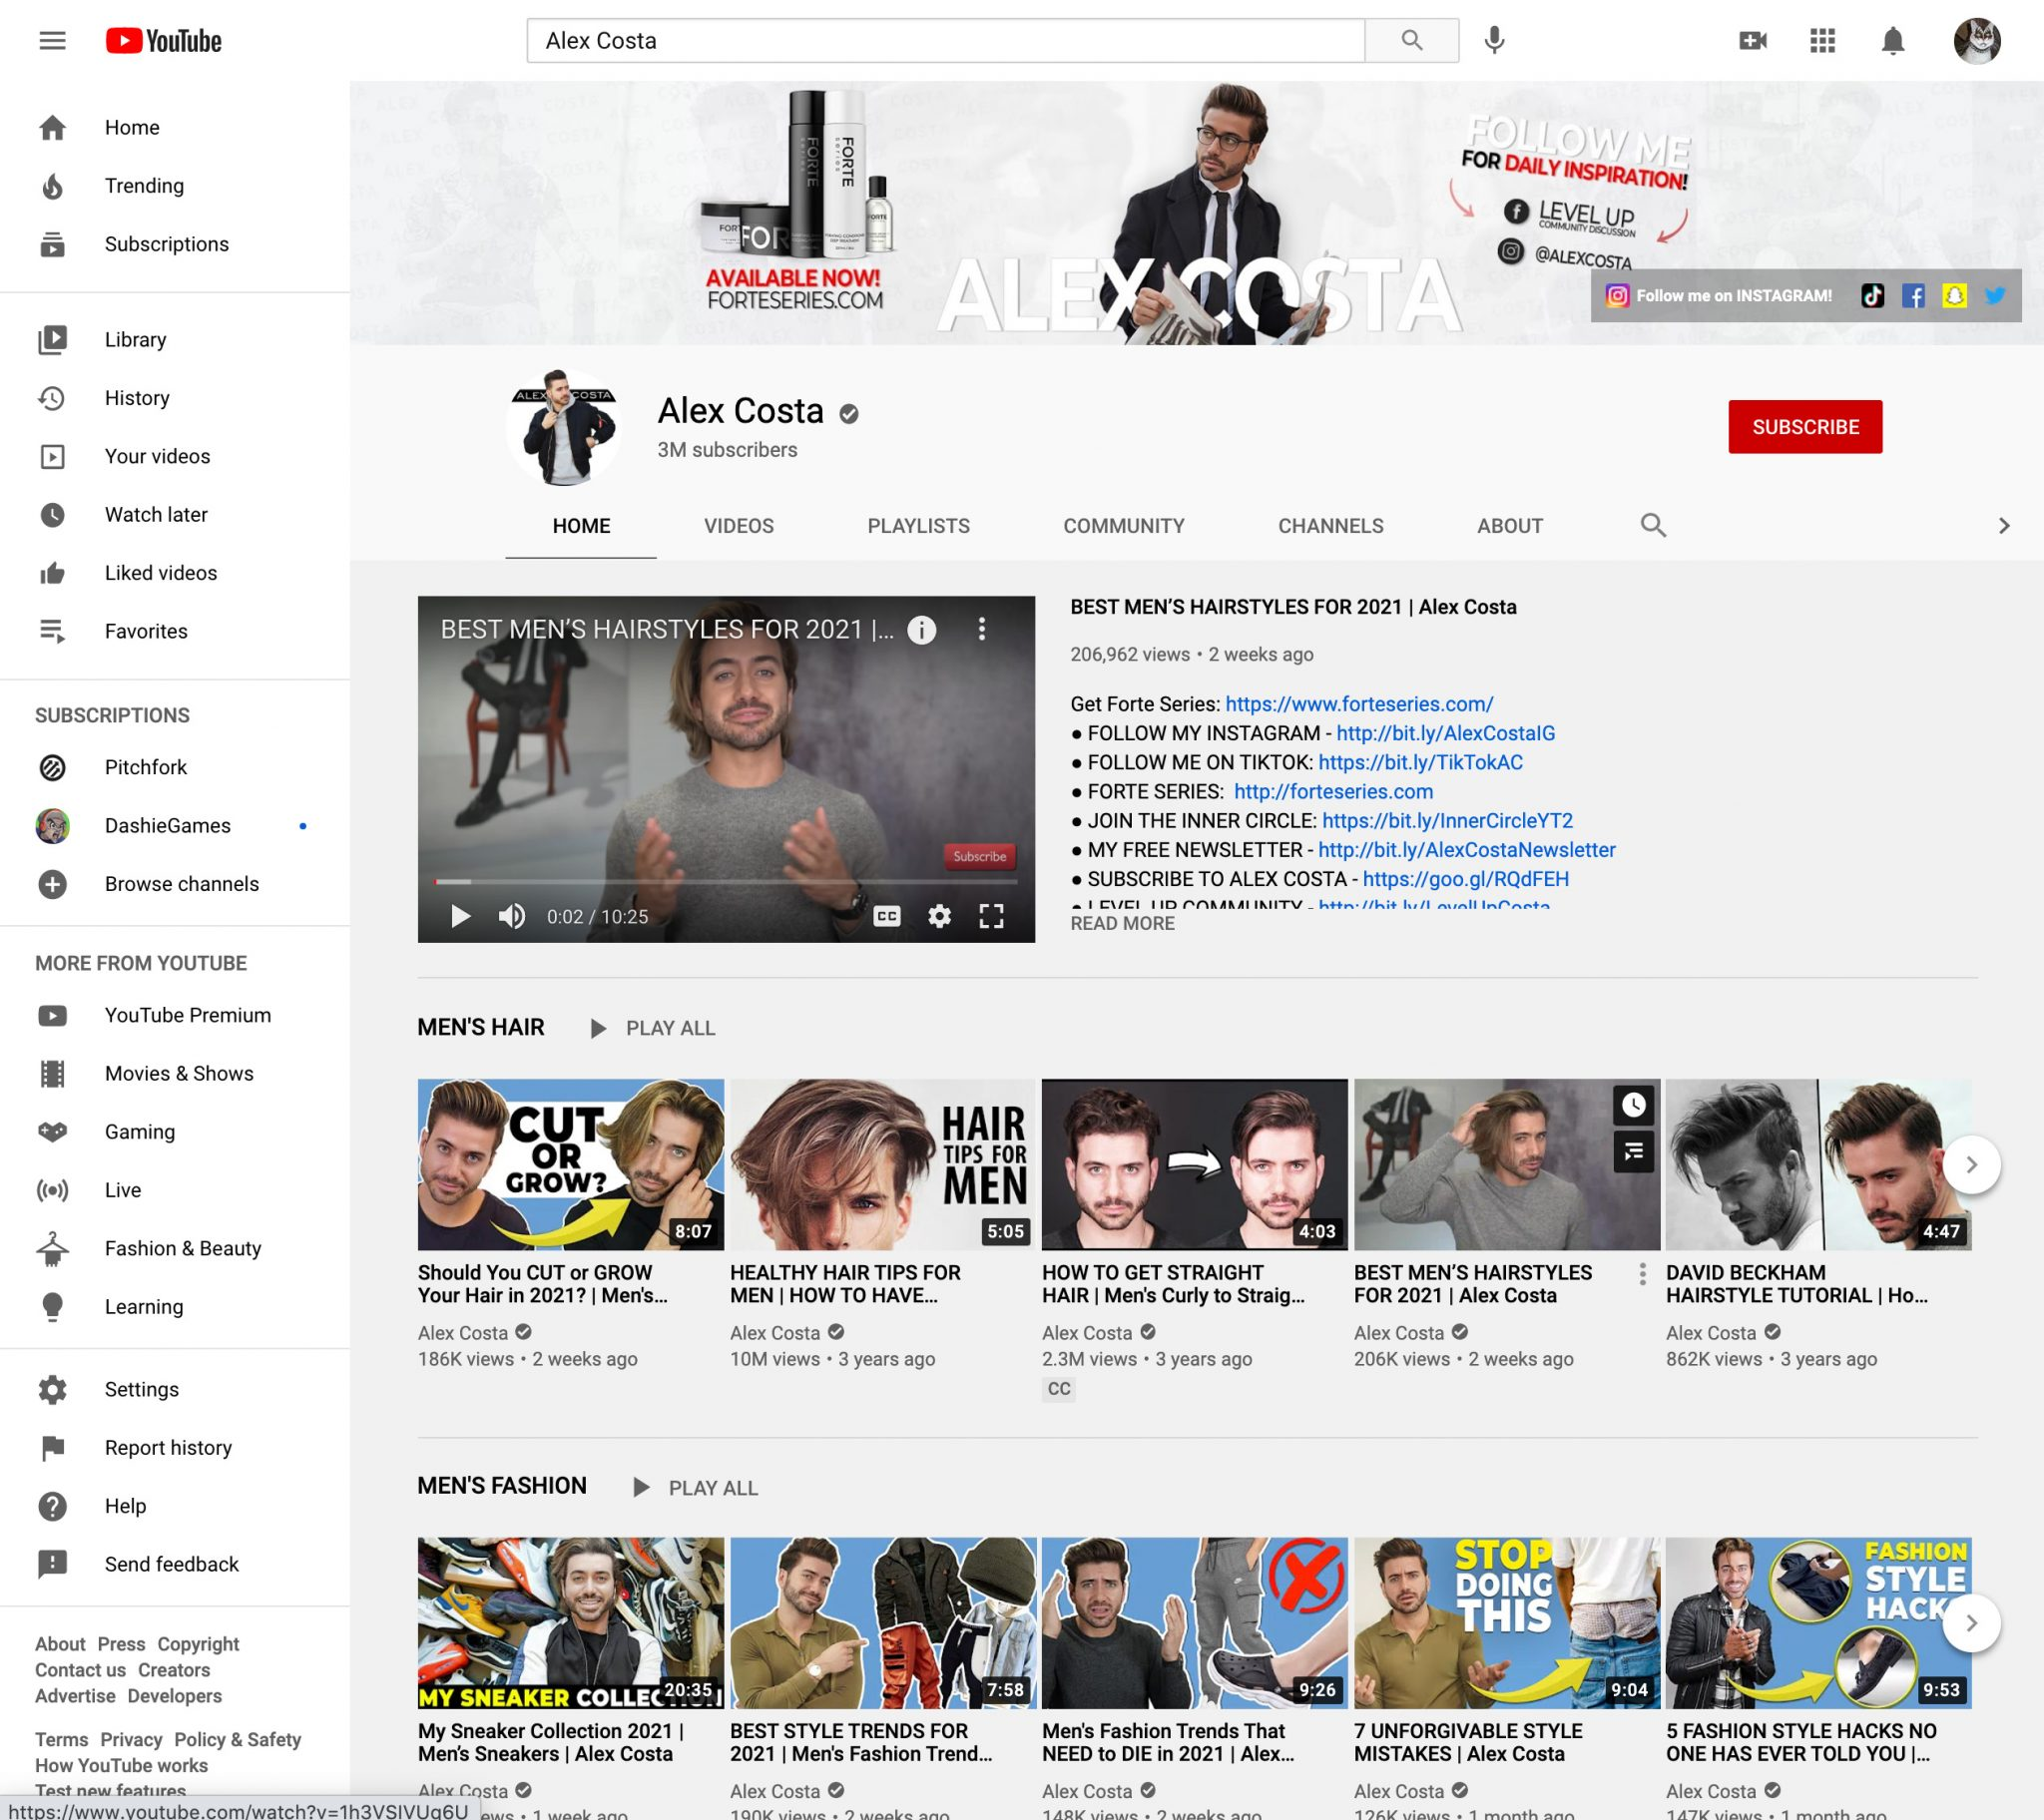 alex costa youtube influencer page